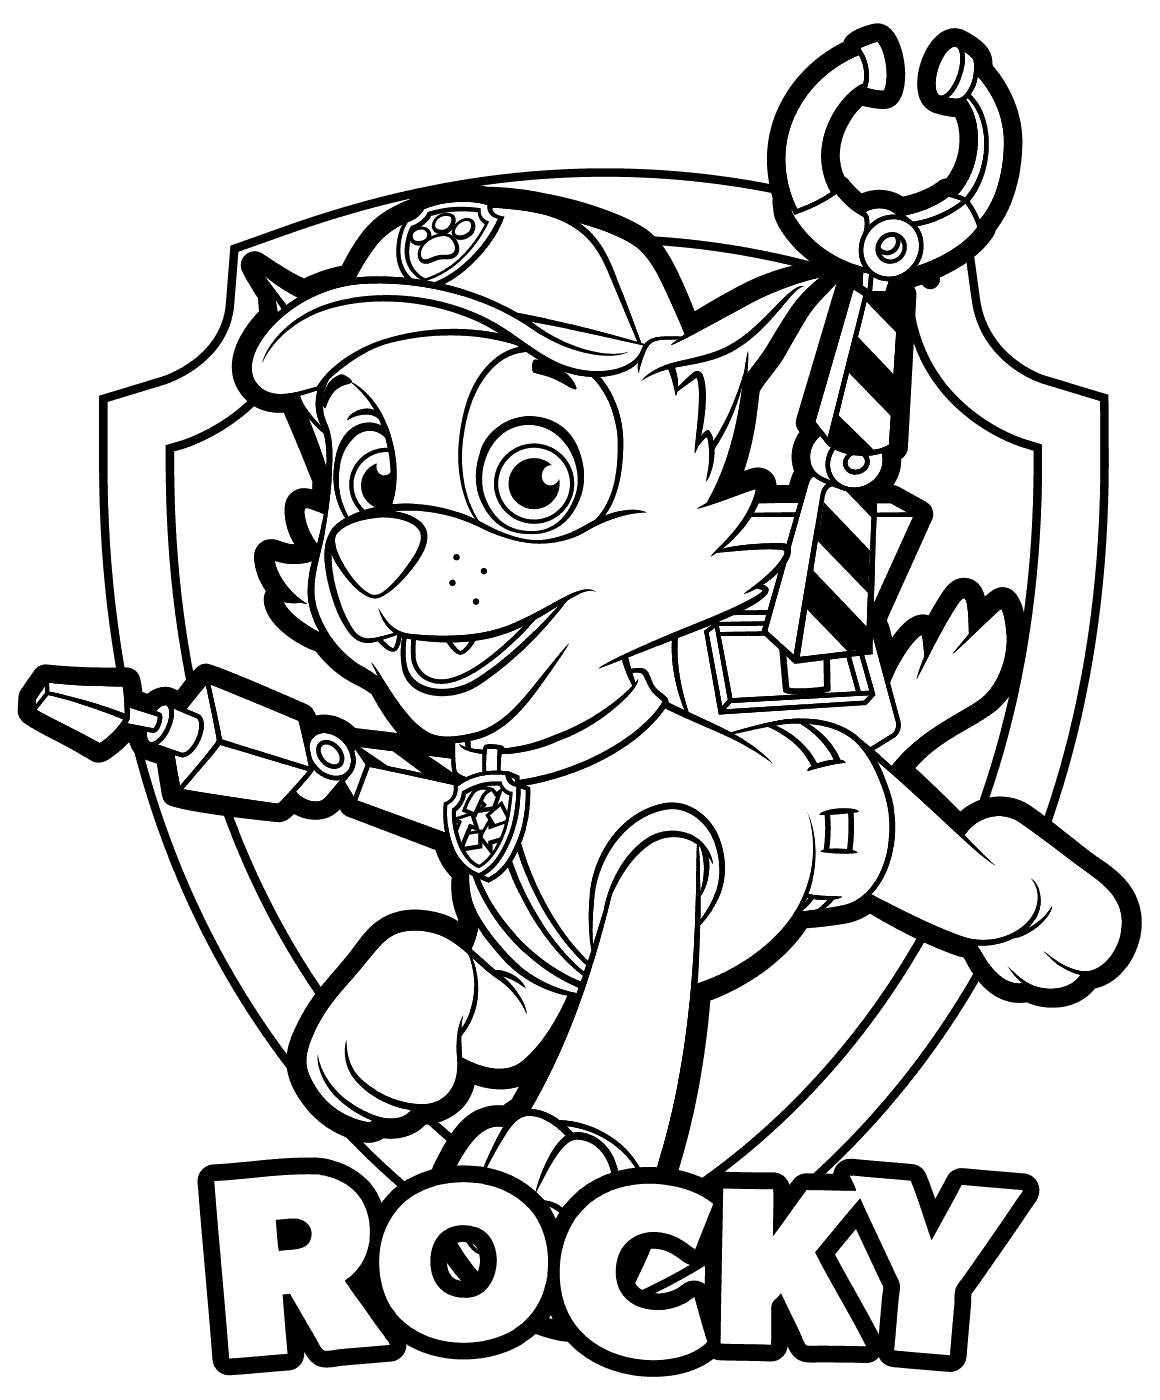 paw patrol free coloring pages printable paw patrol coloring pages print and colorcom free paw printable pages patrol coloring